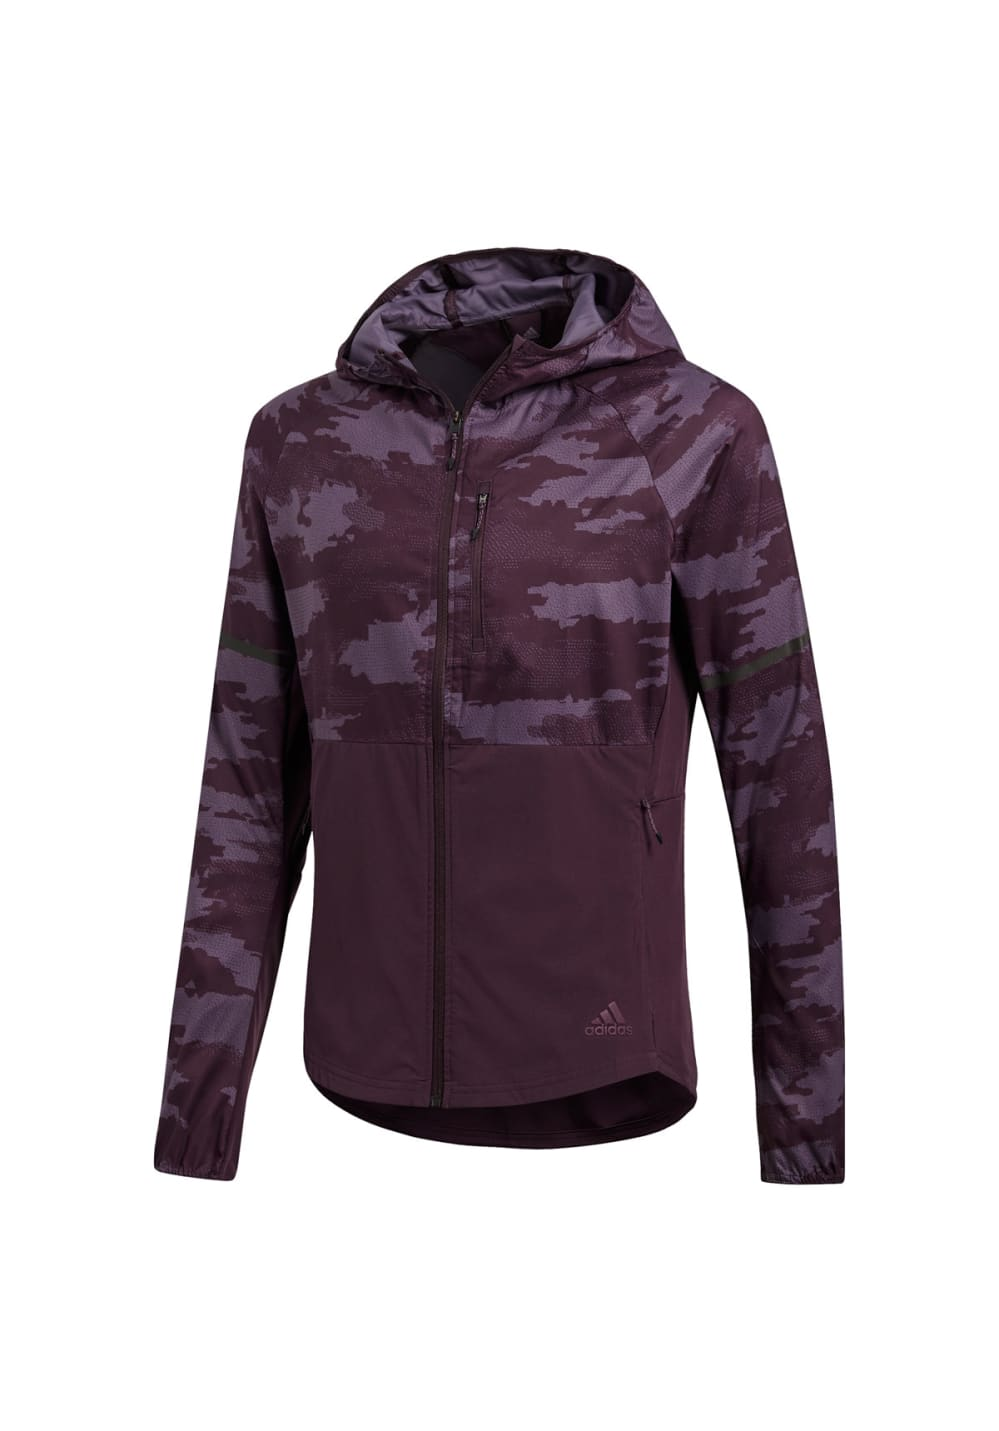 Adidas Men Jackets Ultra Graphic Jacket Purple The new